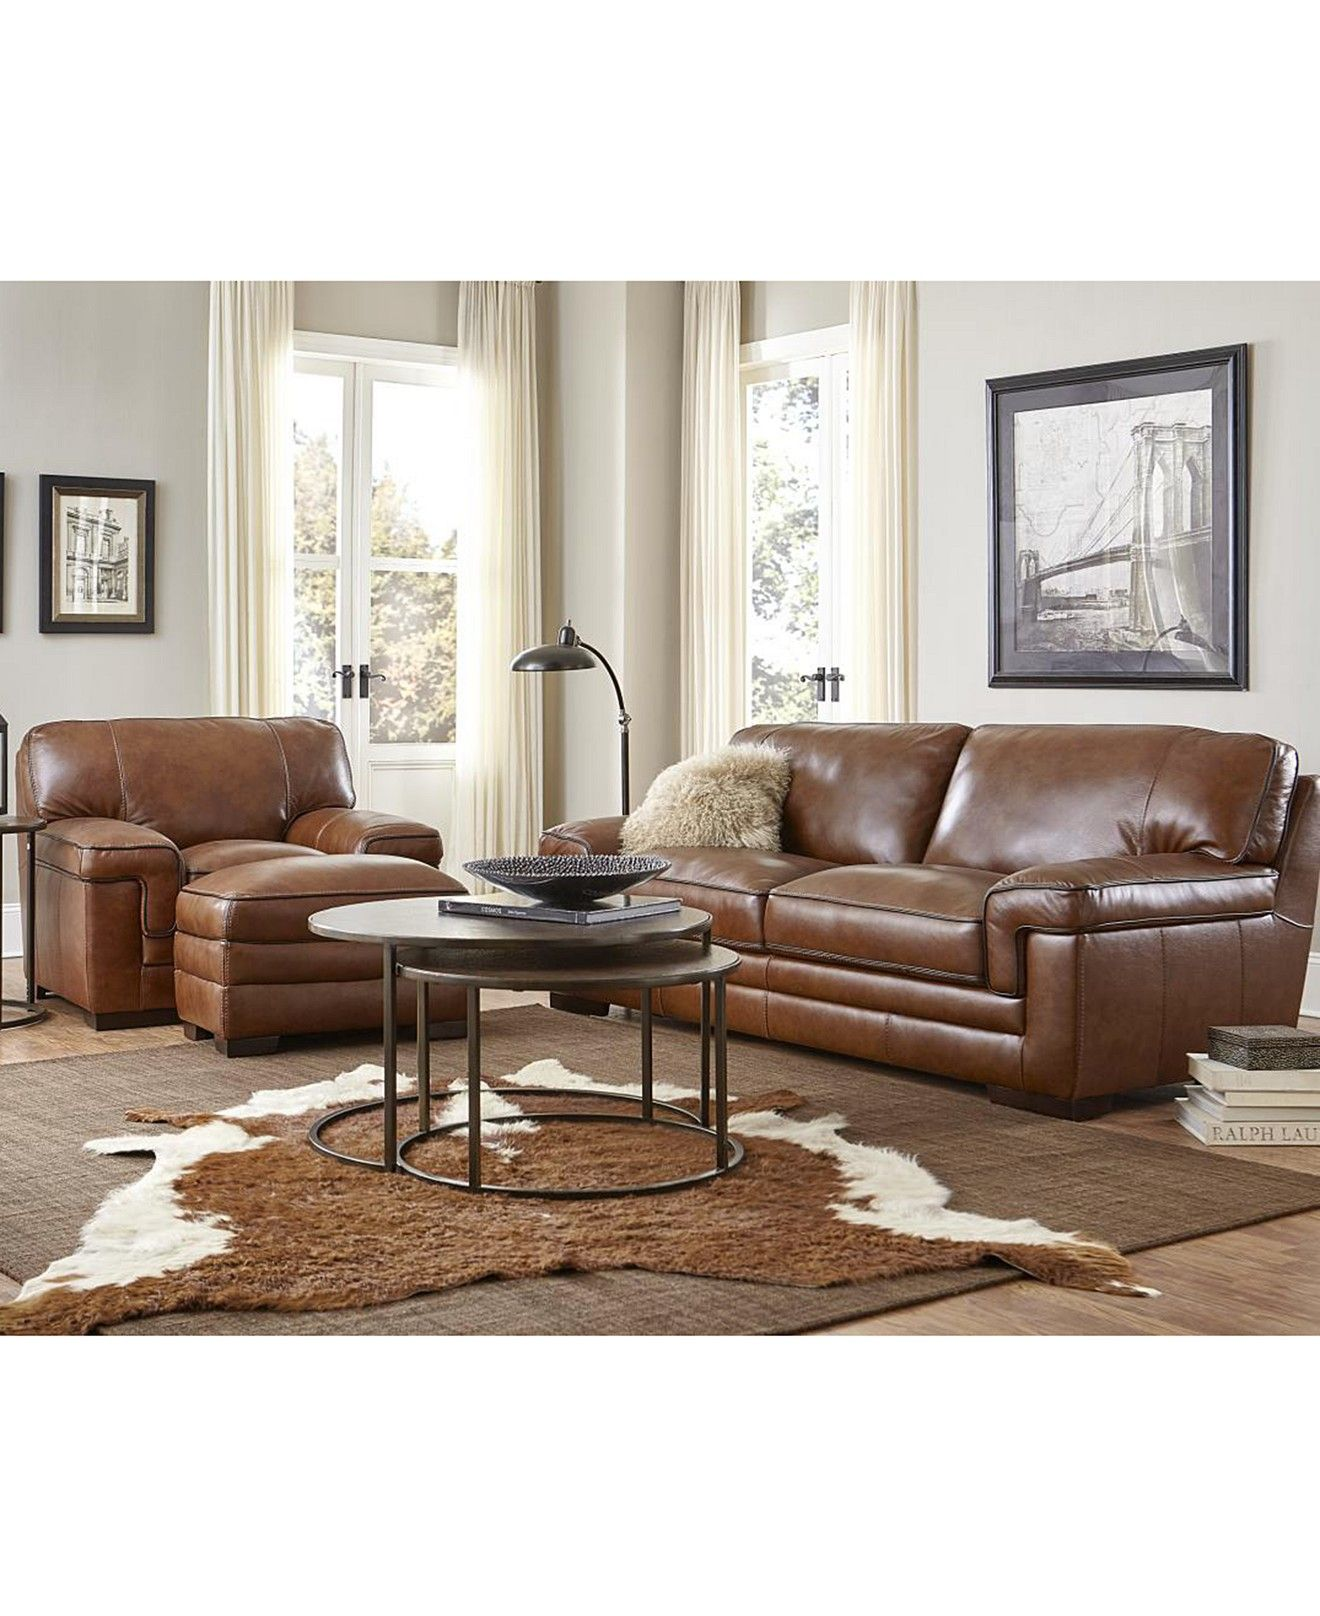 Incredible Myars Leather Sofa Collection Leather Sofa Furniture Machost Co Dining Chair Design Ideas Machostcouk